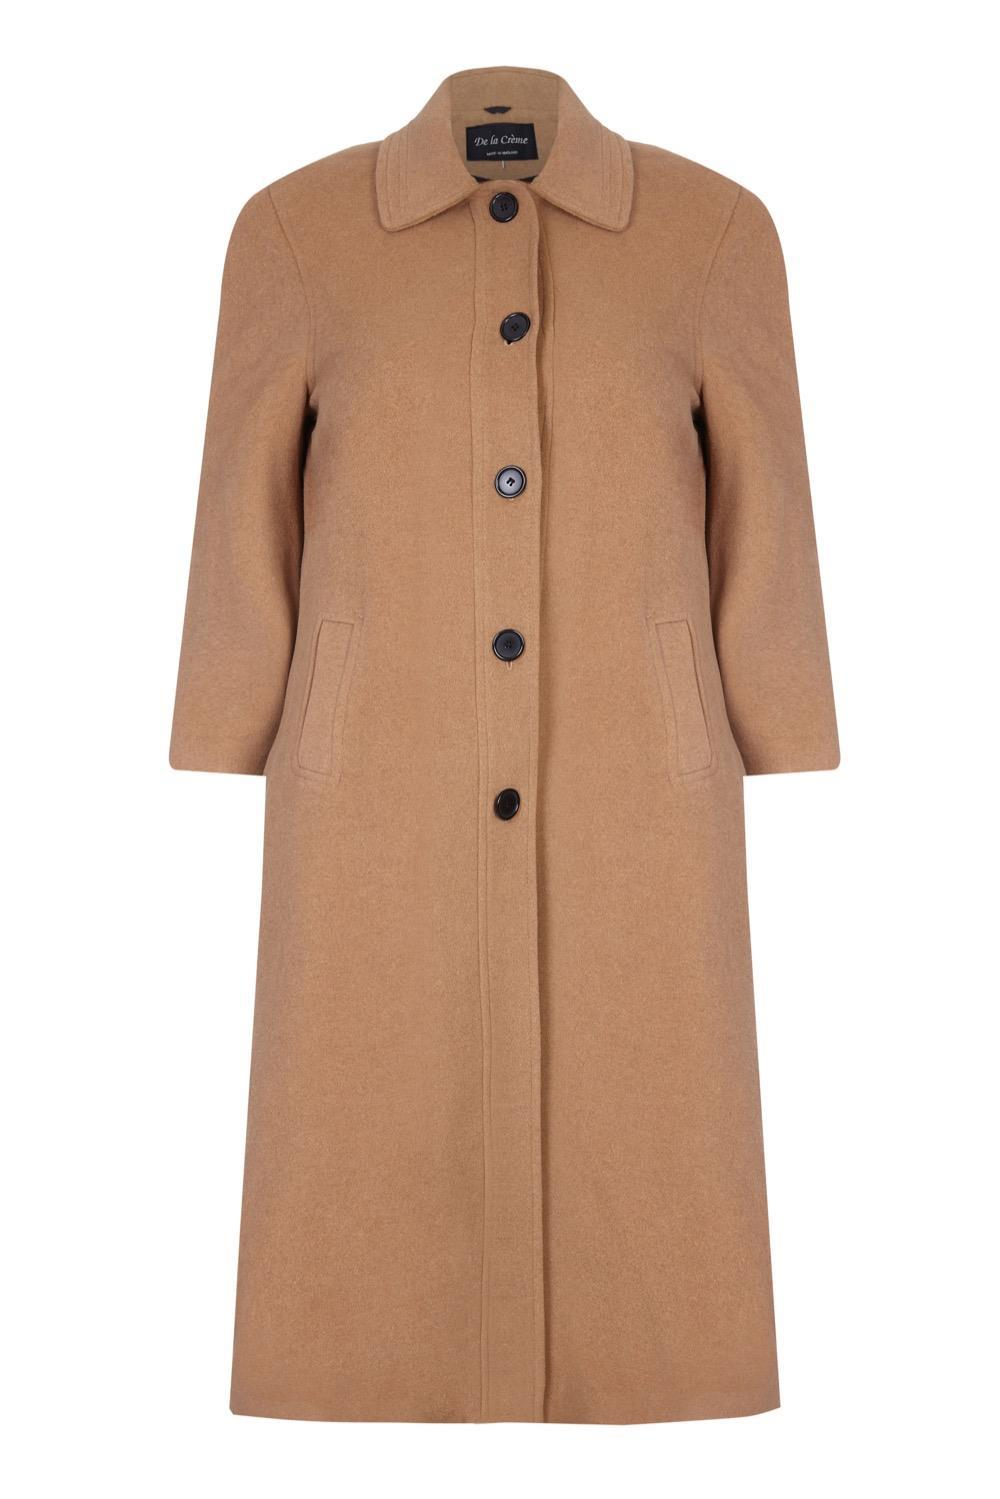 Anastasia - Womens Winter Single Breasted Wool and Cashmere Blend Long Coat